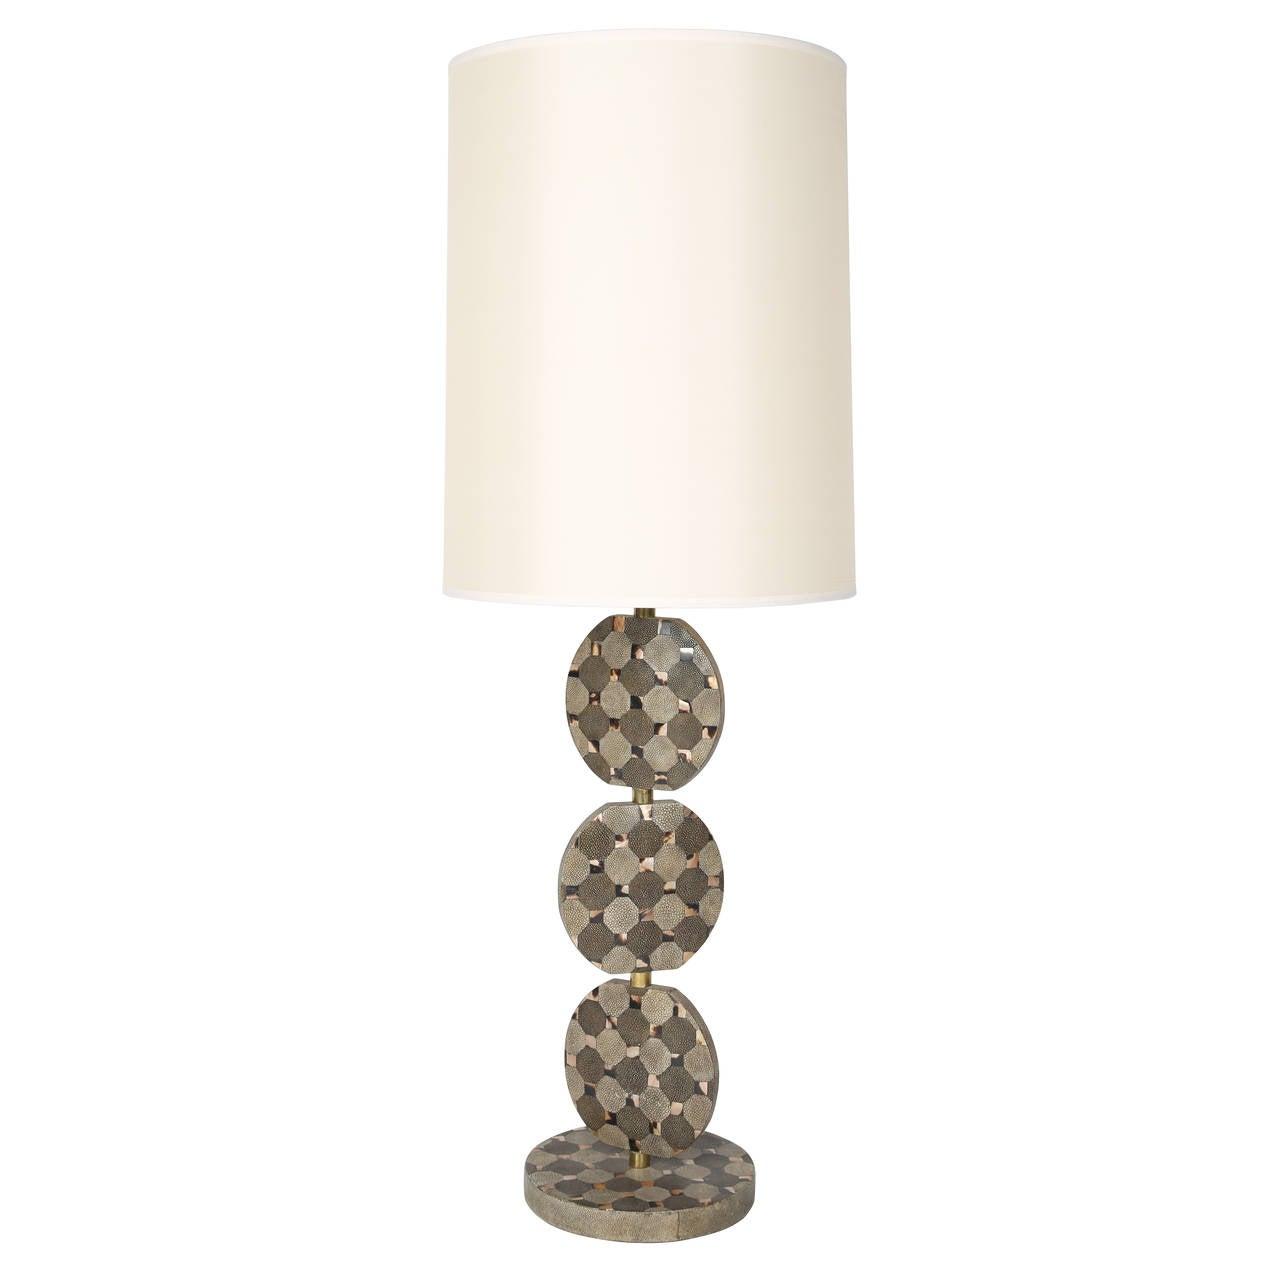 Sculptural Table Lamp in Shagreen and Horn by R & Y Augousti, circa 1980s